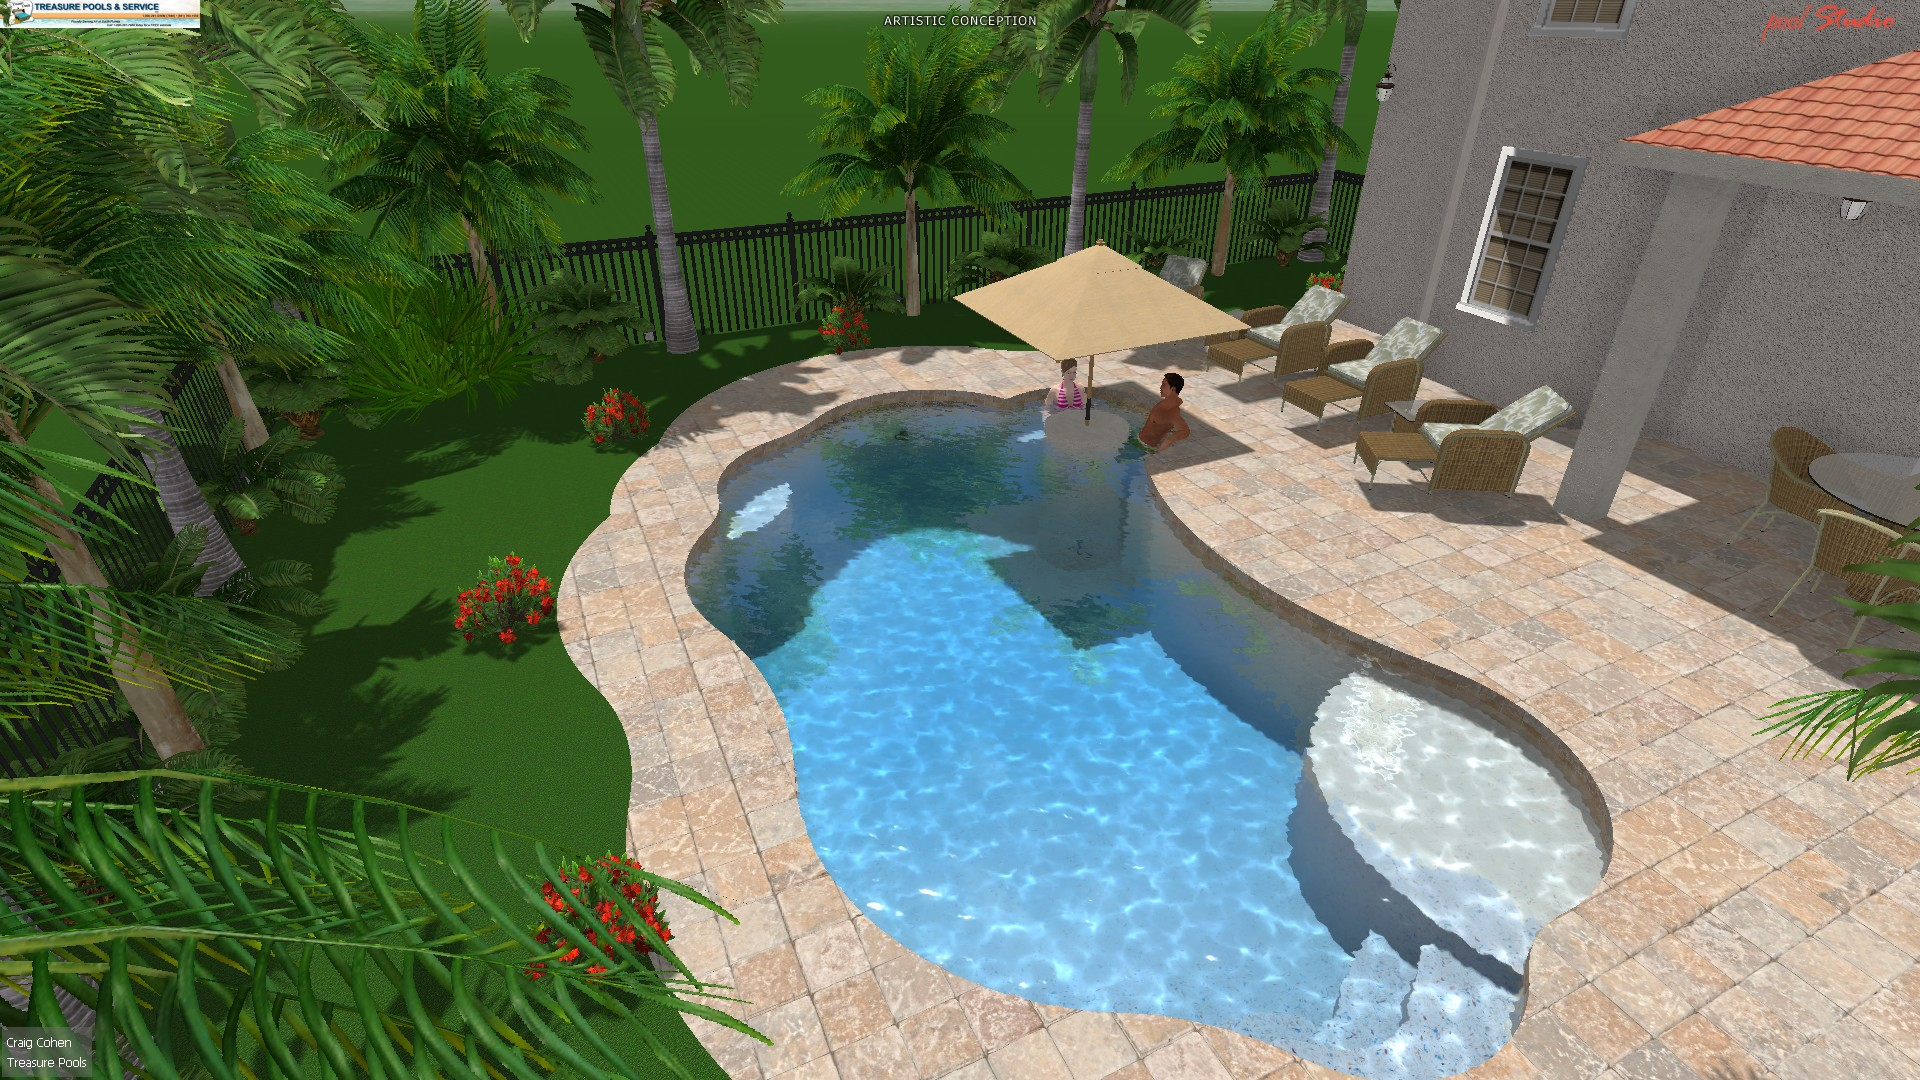 Treasure pools and service 3d pool design treasure pools for Pool design services